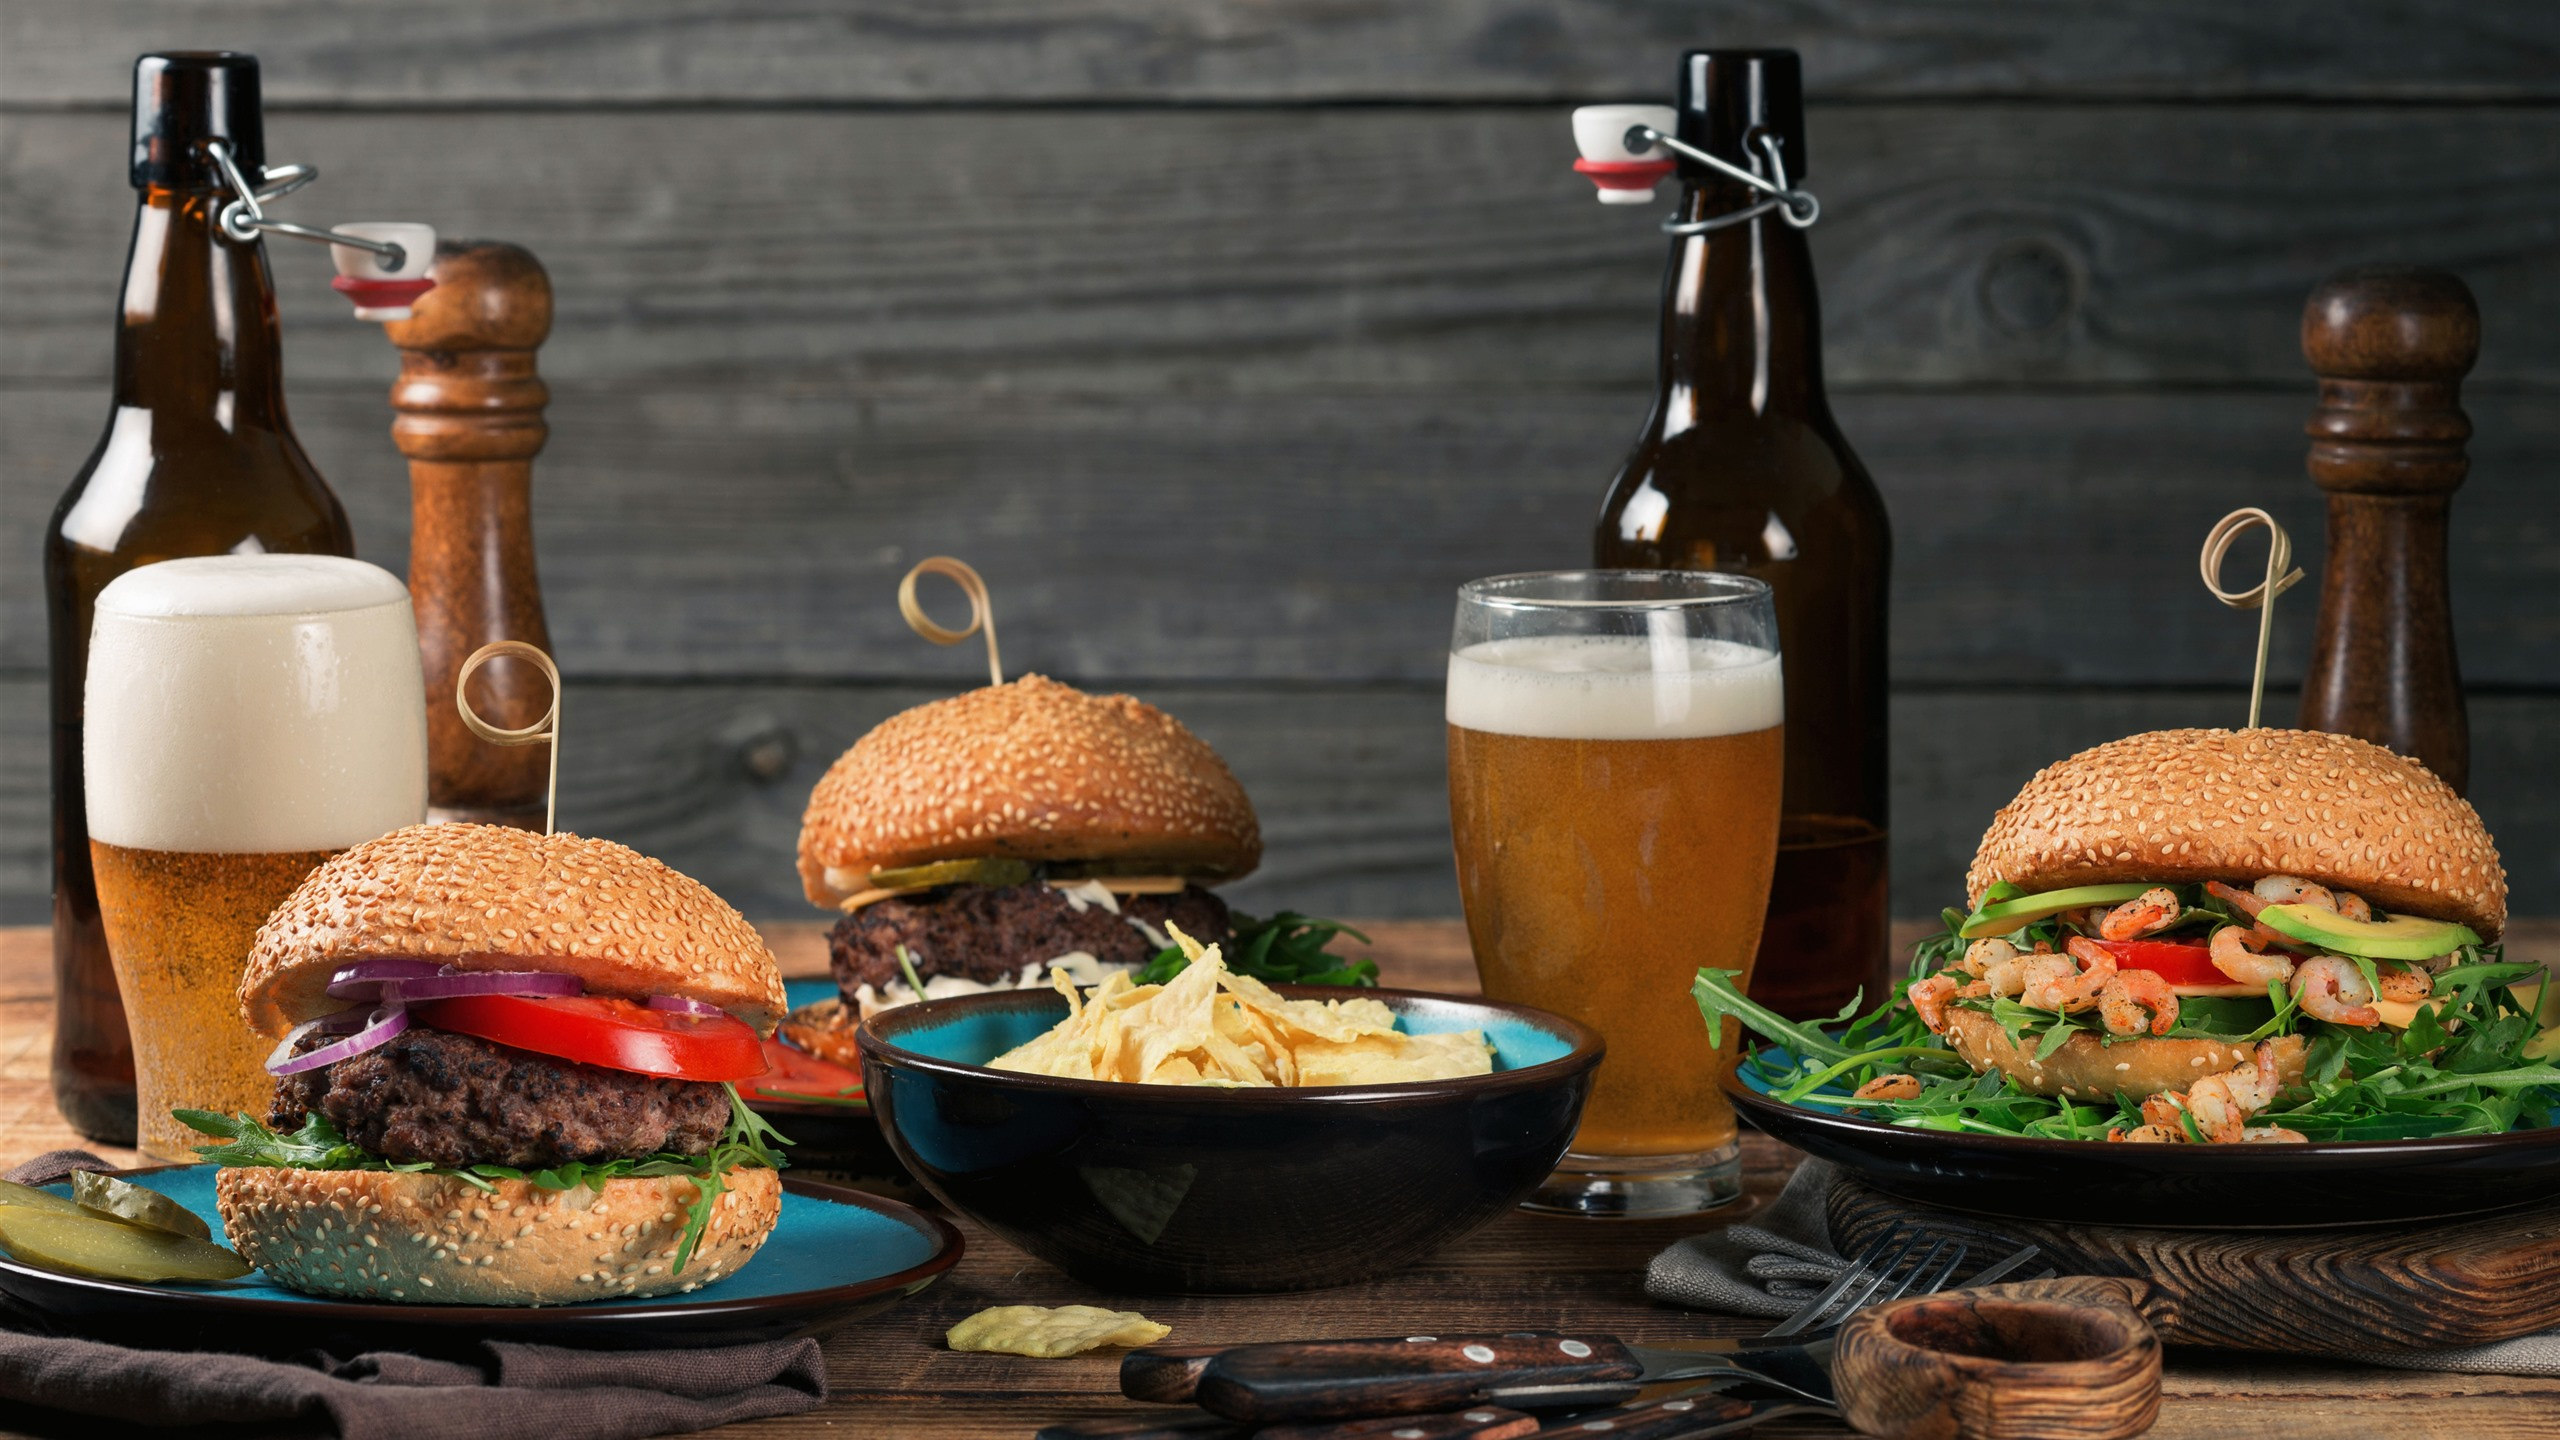 Fast Food, Burgers, Beer, Bottle, Meal 1242x2688 IPhone XS